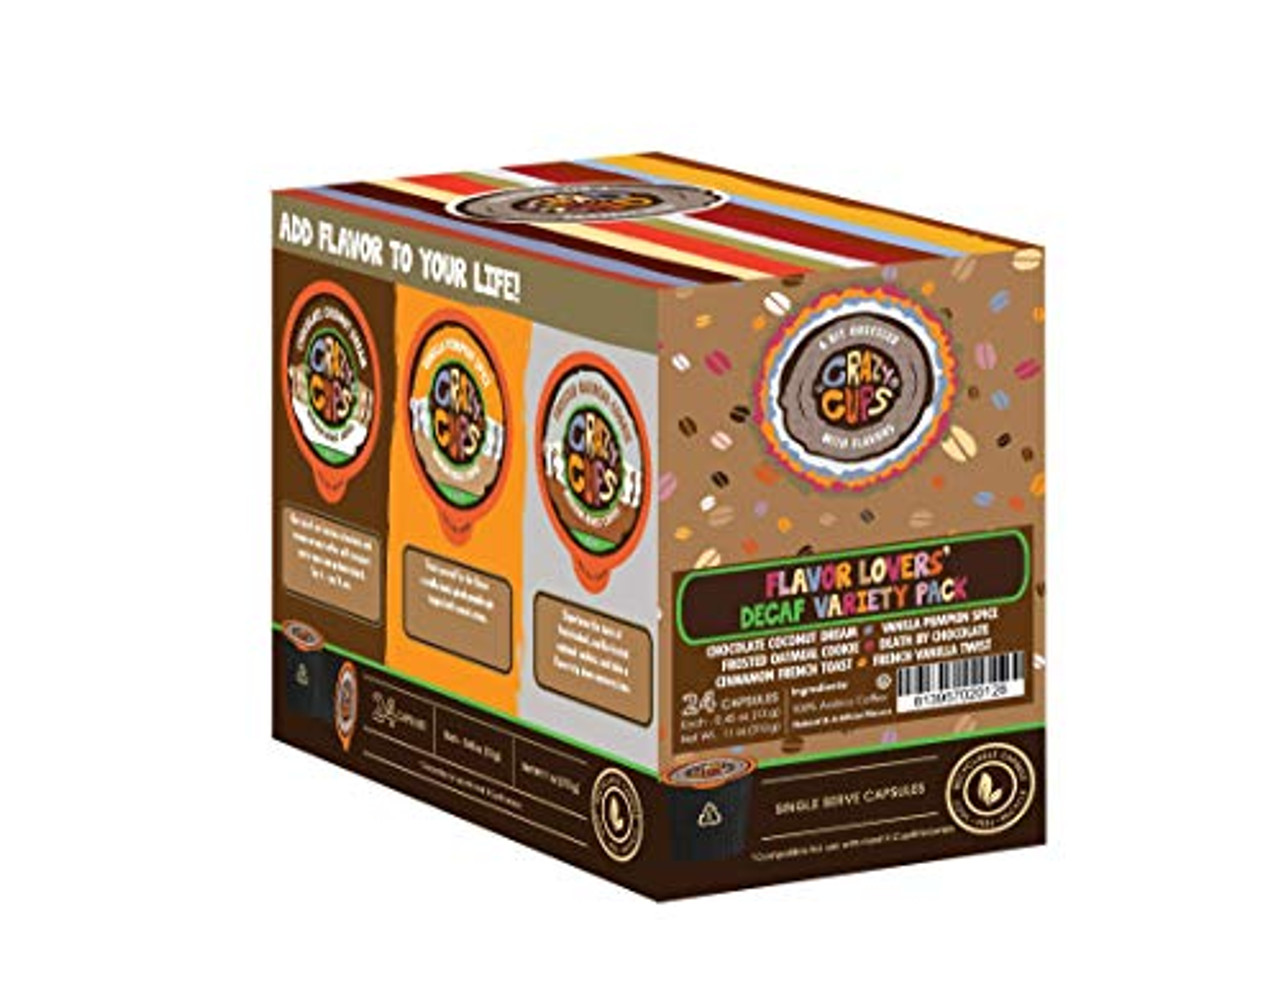 Crazy Cups Decaf Lovers Flavored Coffee Variety Pack 24 Count